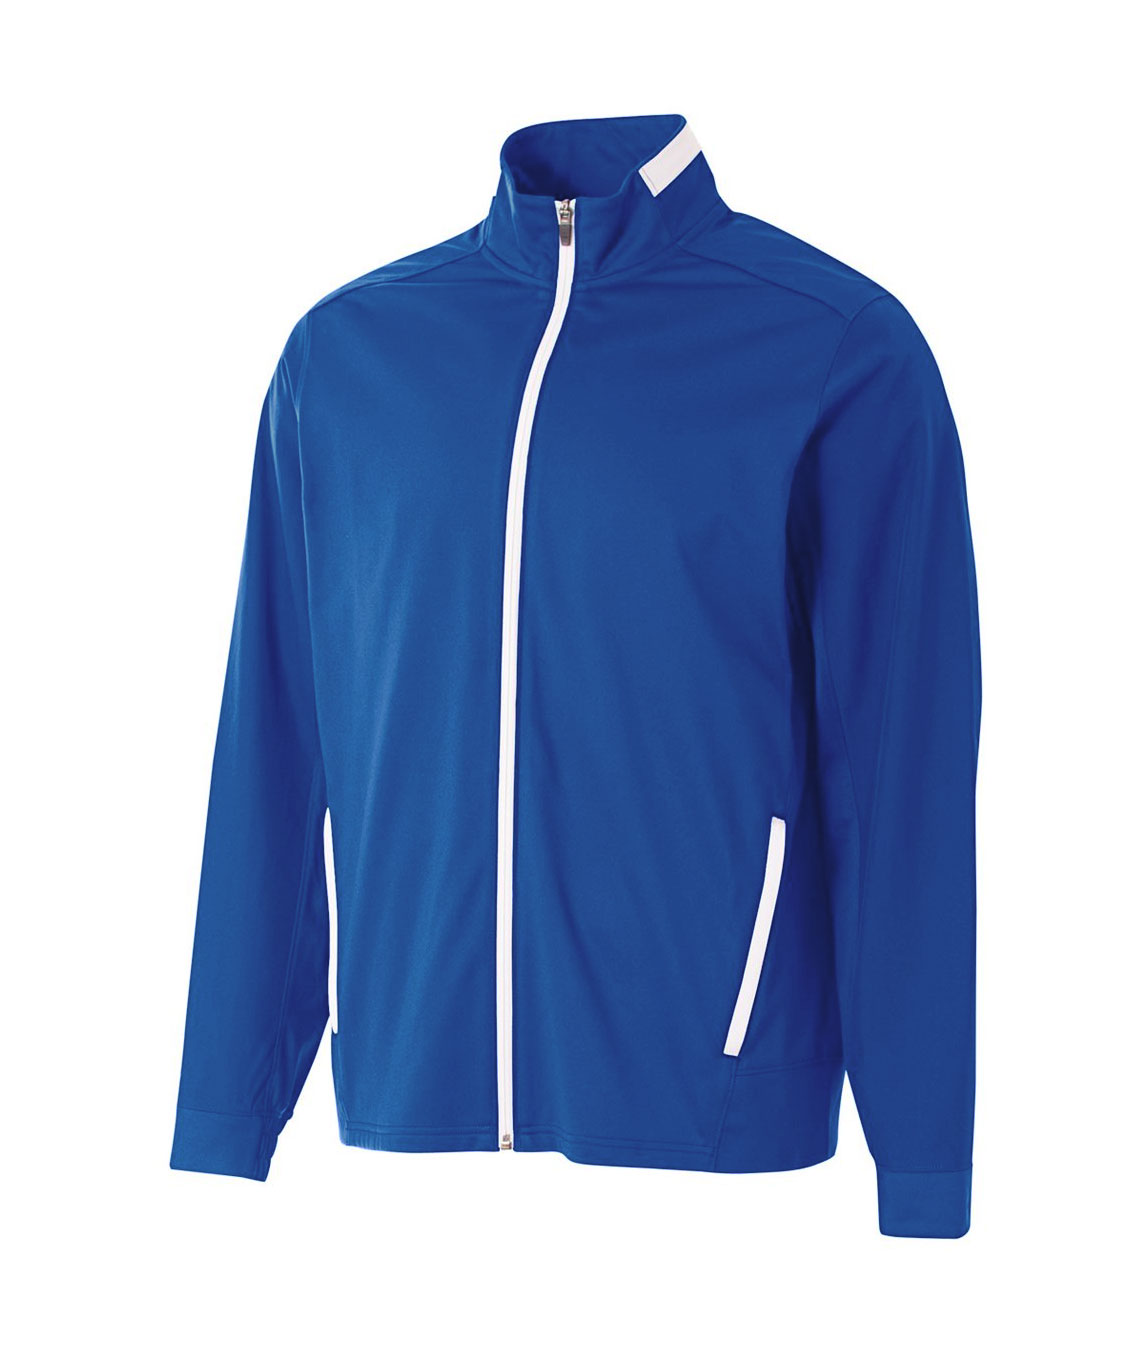 A4 Youth League Full Zip Warm Up Jacket